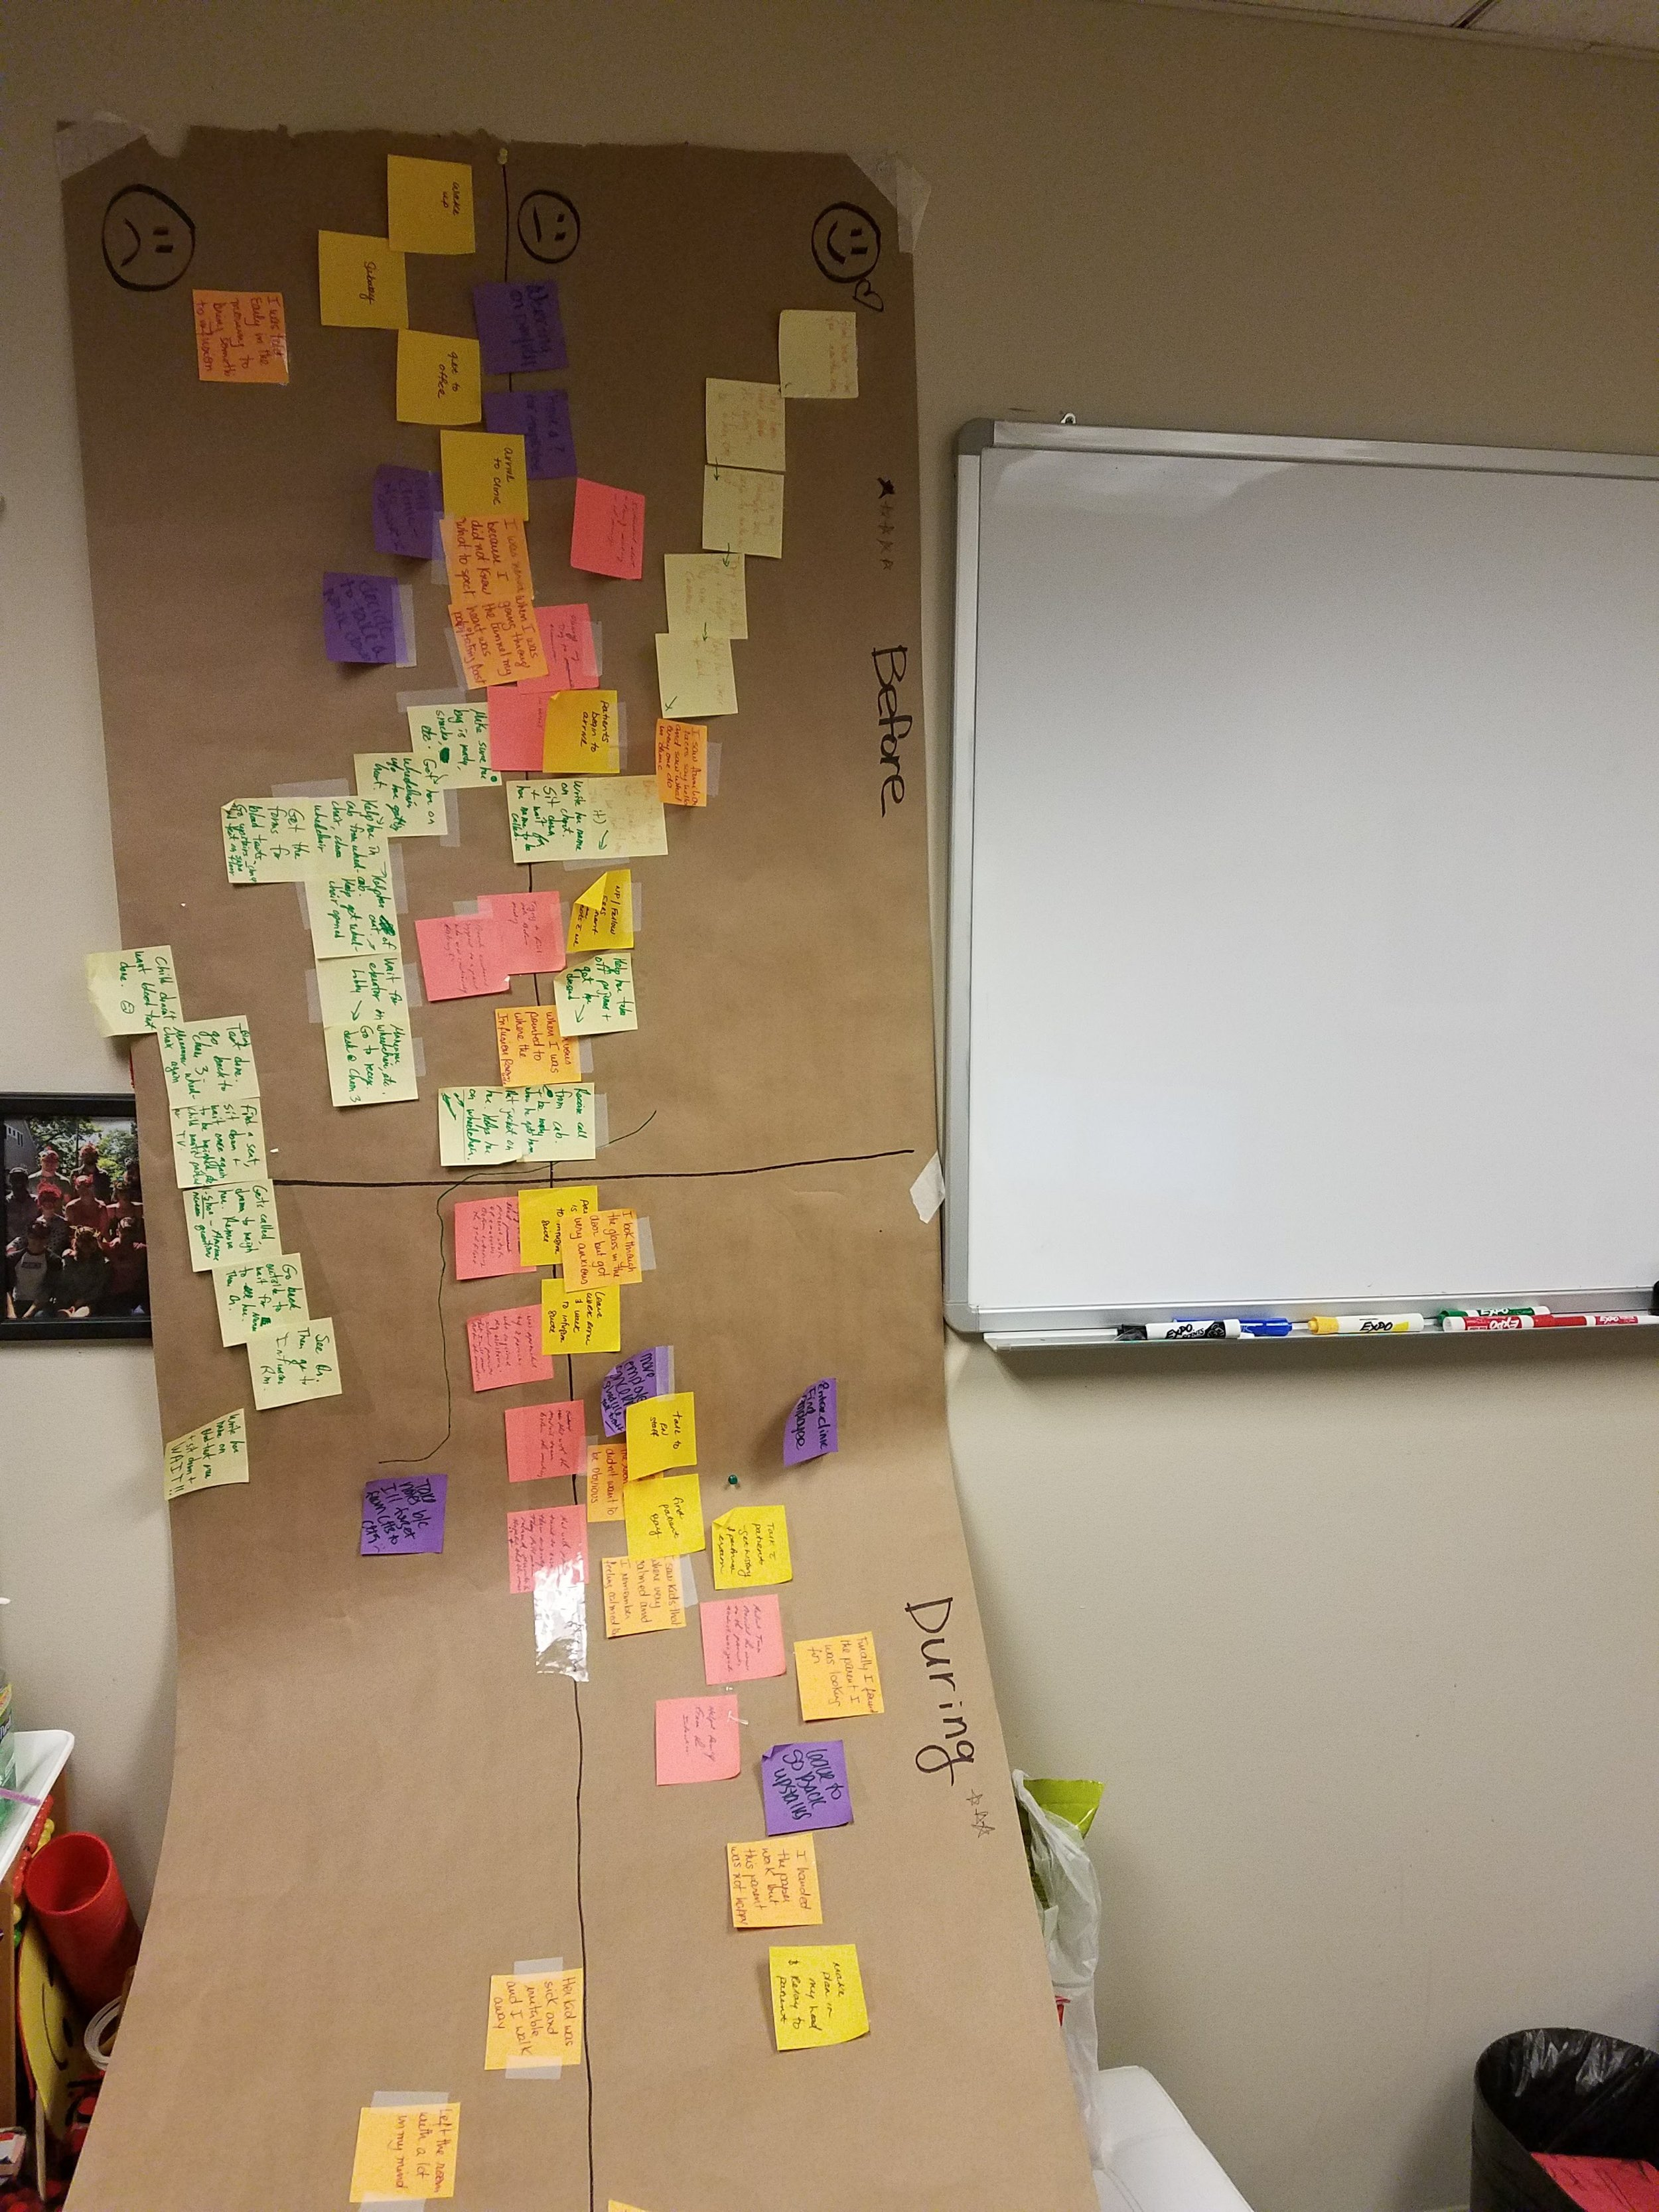 Journey map created during the December workshop at the Children's Hospital At Montefiore